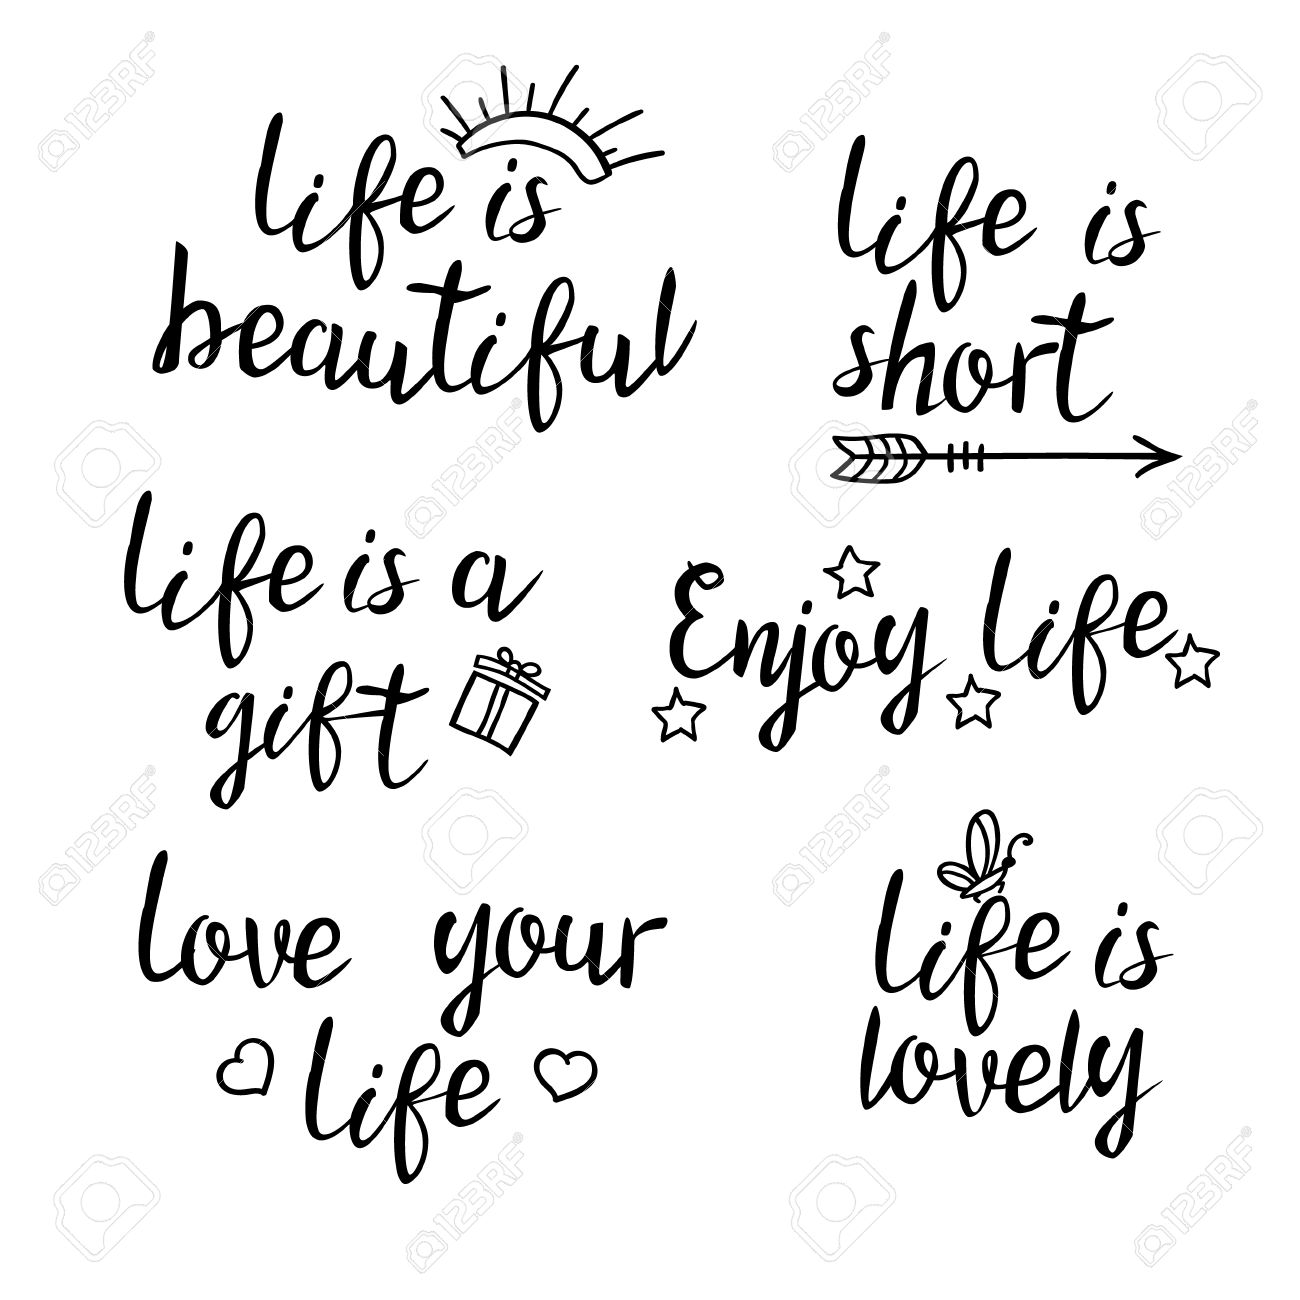 Short Inspirational Quotes About Life Lettering Life Quotescalligraphy Inspirational Quote About